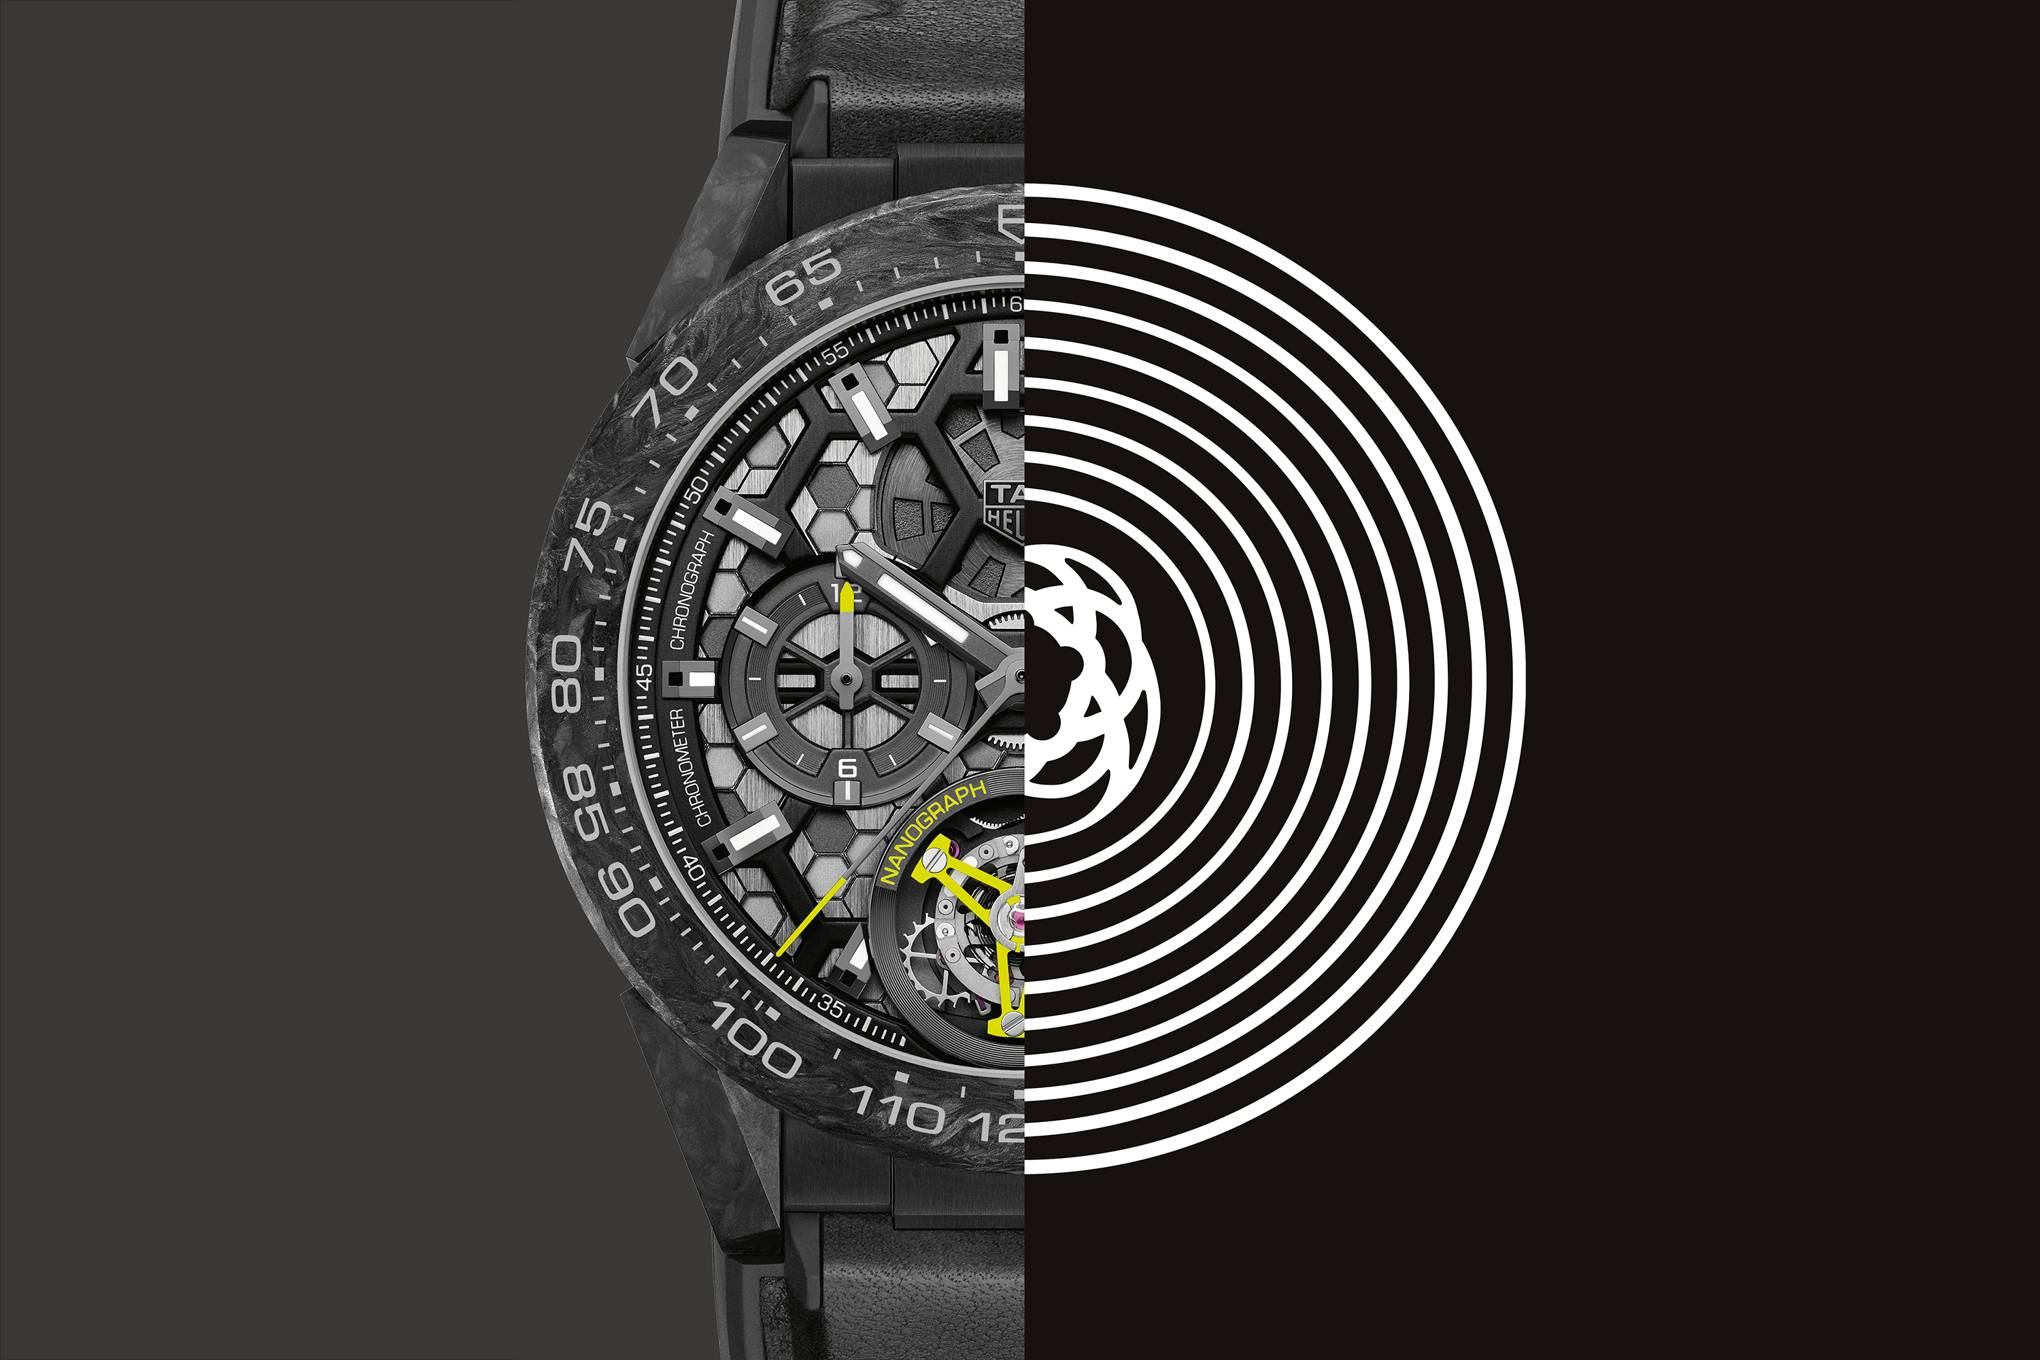 Tag Heuer S Radical New Way To Make Watches Growing Carbon